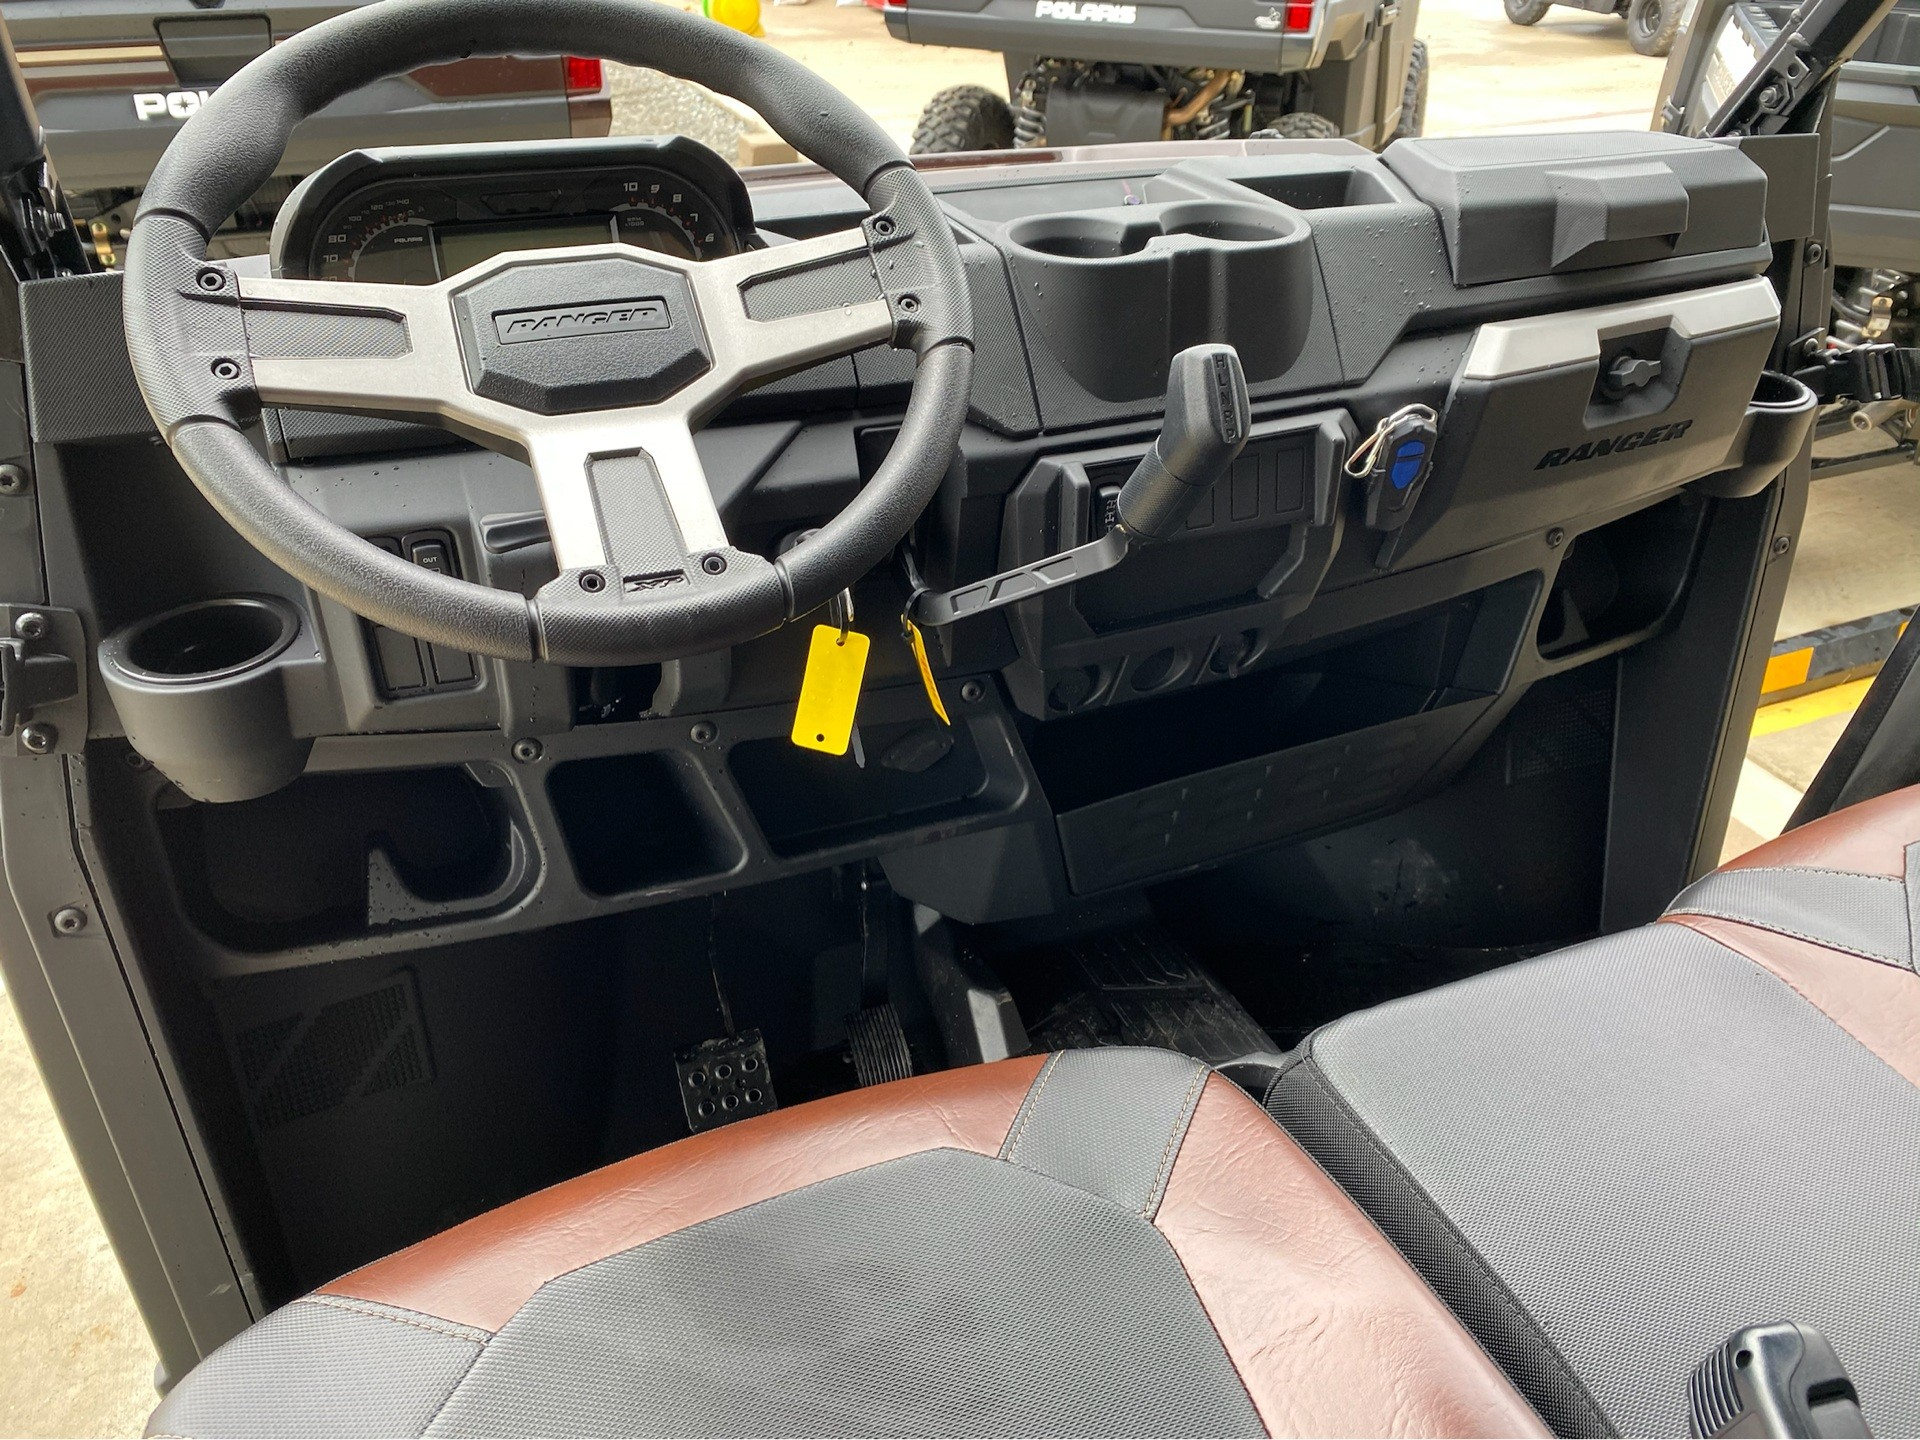 2020 Polaris Ranger XP 1000 Texas Edition in Marshall, Texas - Photo 5